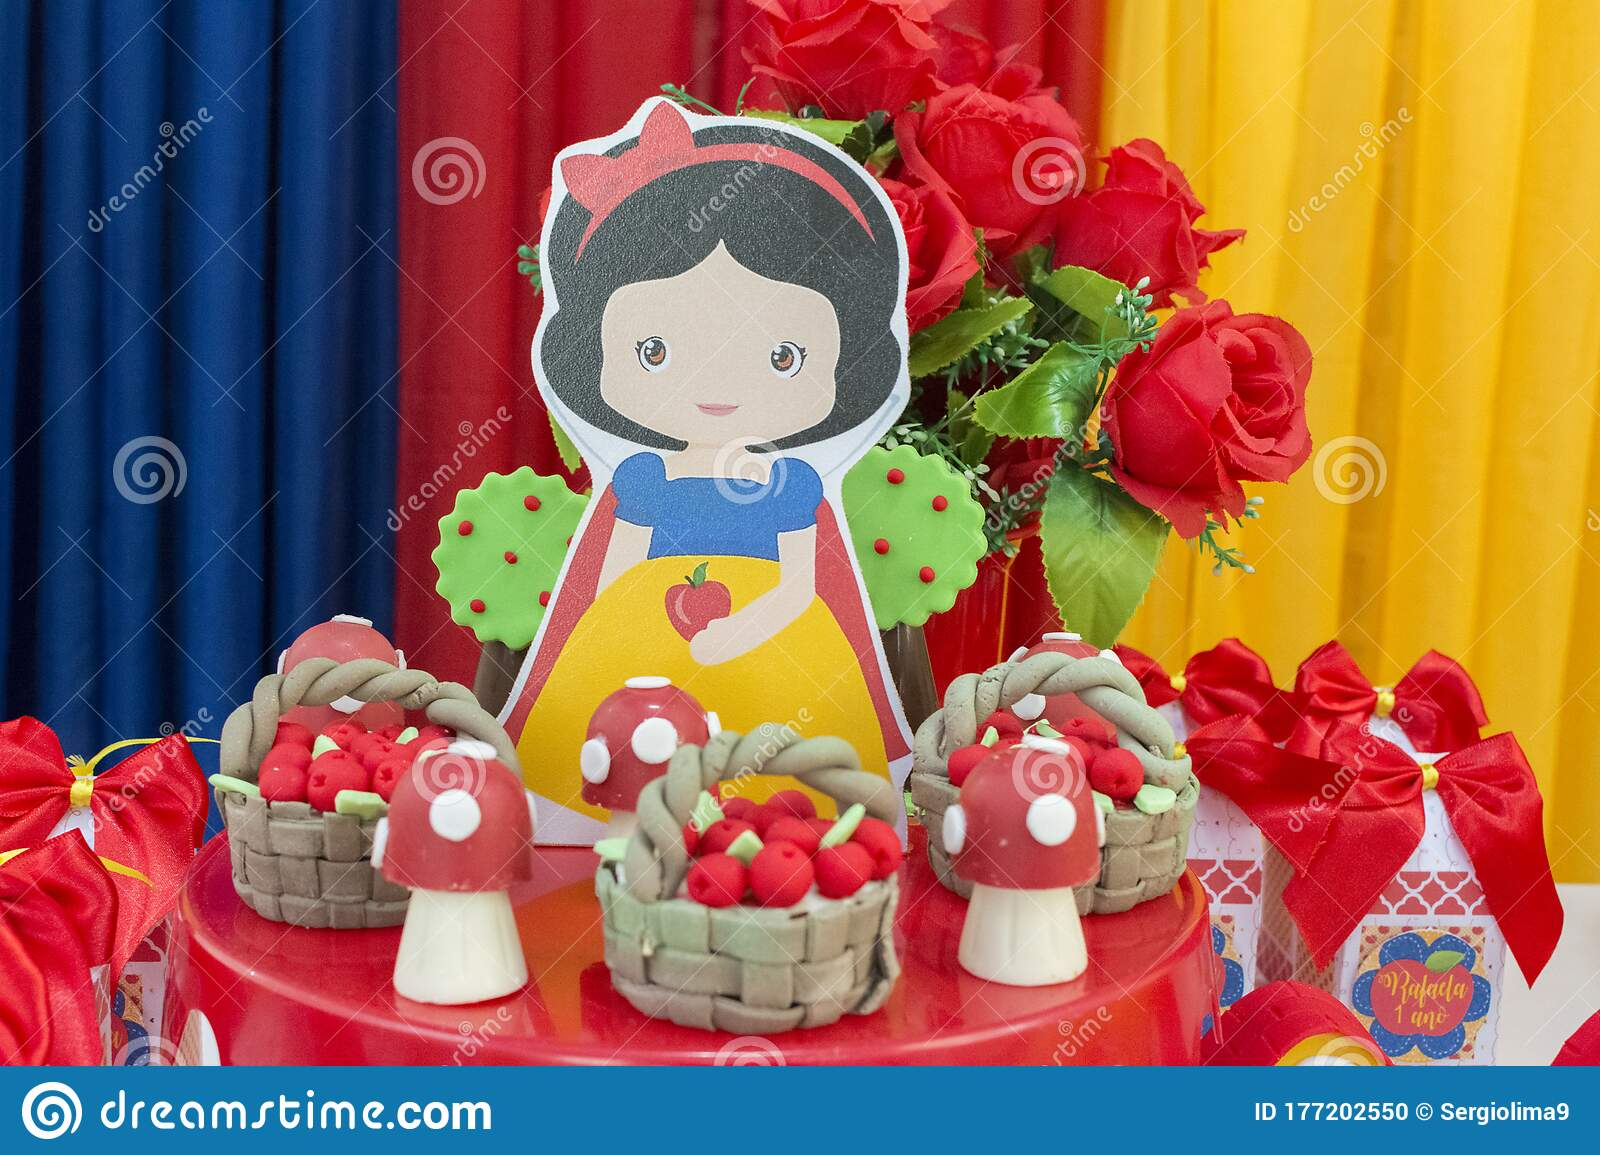 Colorful Birthday Party Decoration Theme Of Snow White And The Seven Dwarfs Editorial Image Image Of Glamour Balloon 177202550